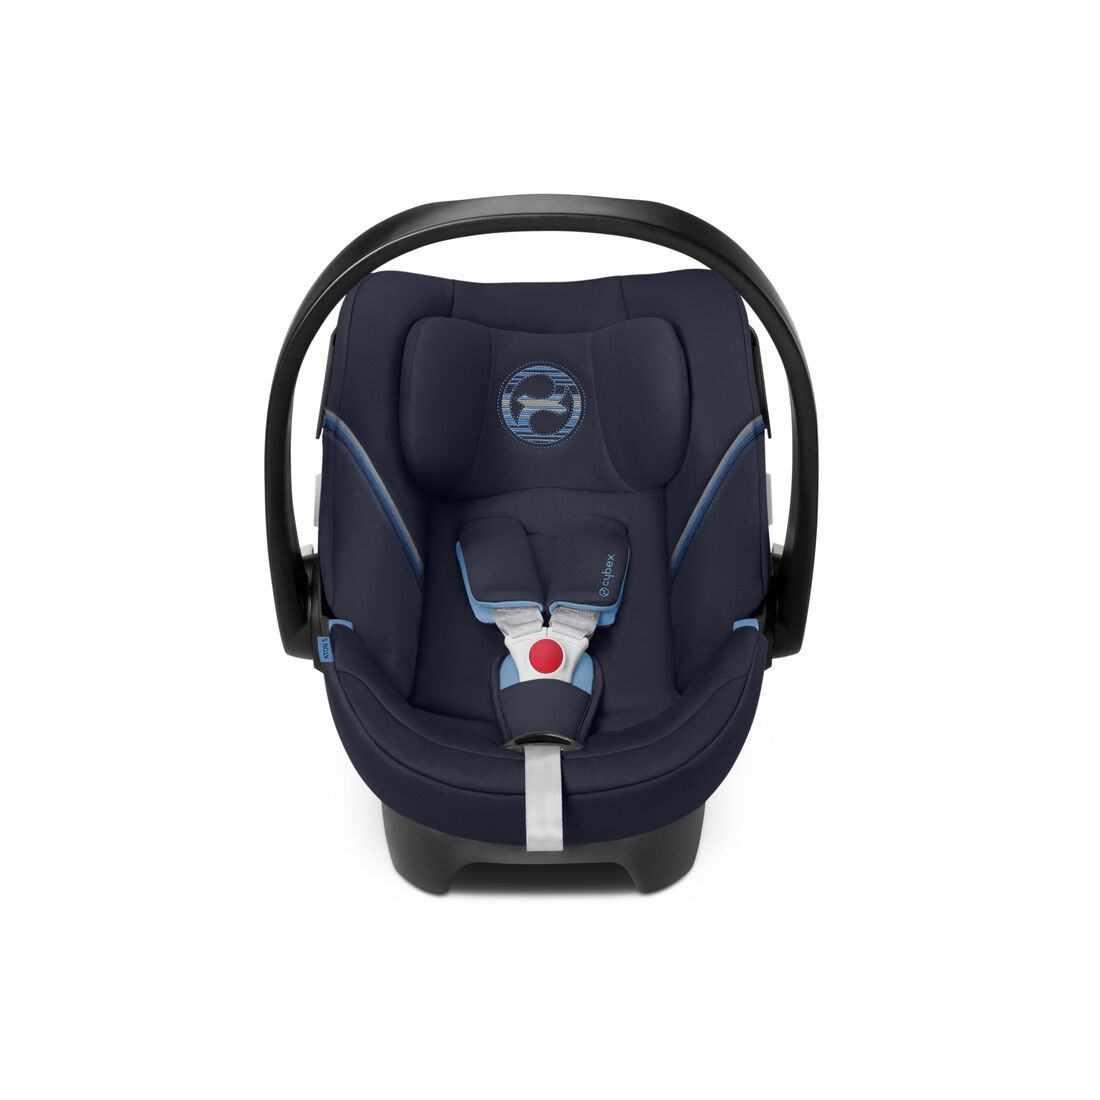 CYBEX Aton 5 - Navy Blue in Navy Blue large image number 2